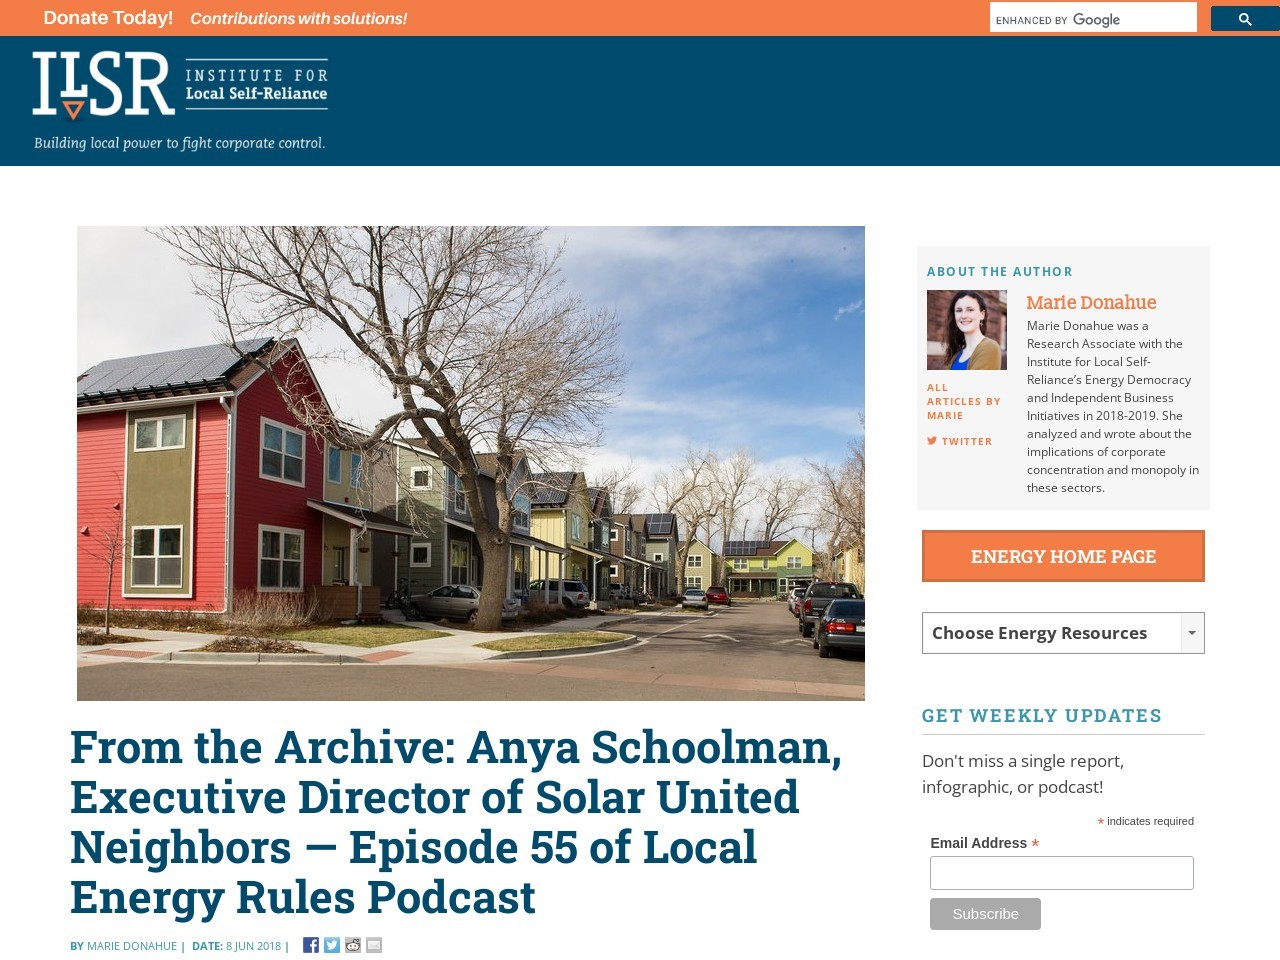 From the Archive: Anya Schoolman, Executive Director of Solar United Neighbors